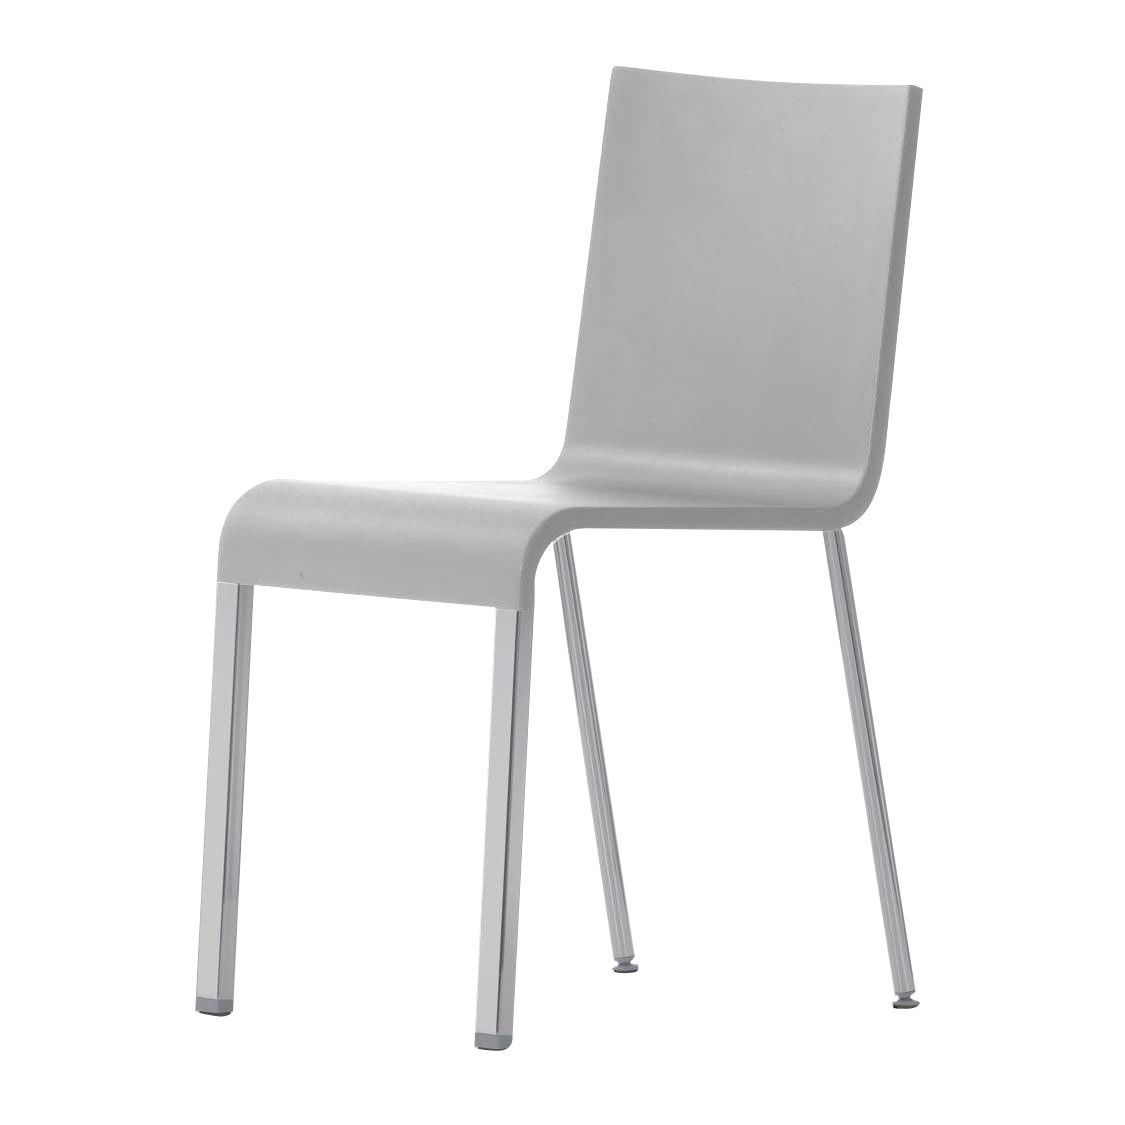 03 Outdoor Chair not stackable Vitra – Vitra 03 Chair